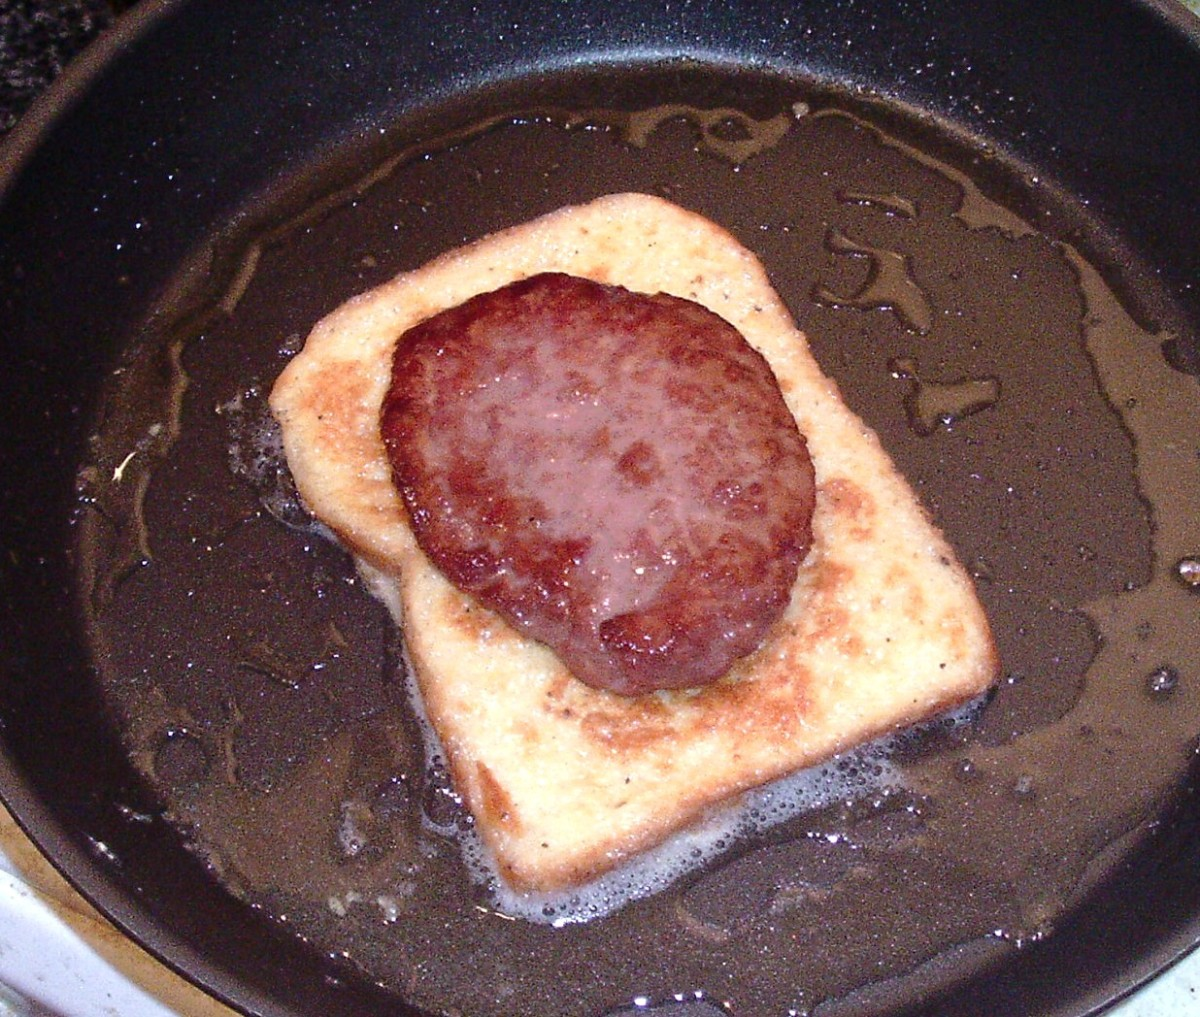 Blue beef burger is laid on one of the slices of eggy bread